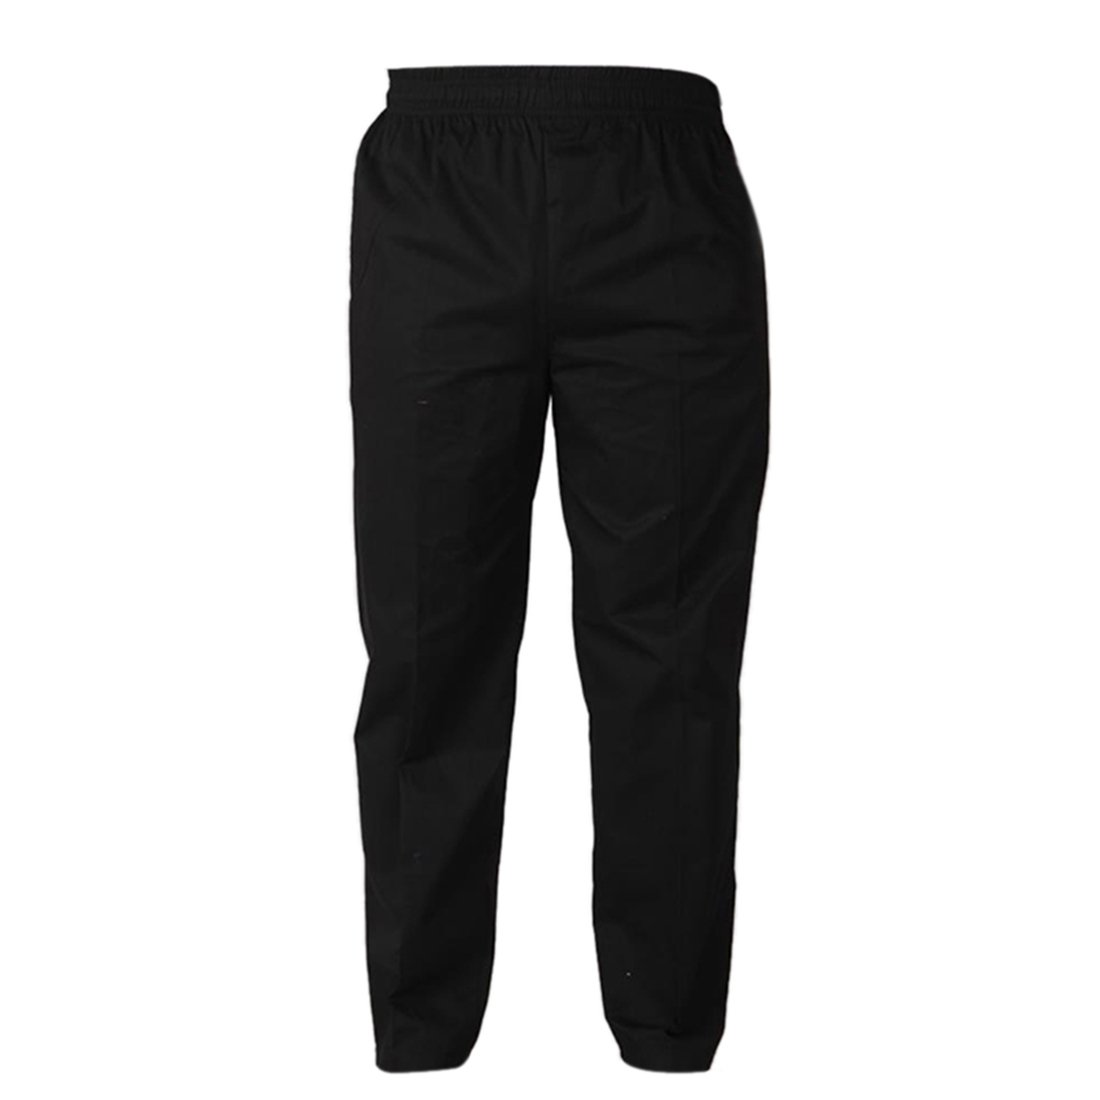 Freahap Men's Baggy Chef Pant Workwear Cook Pant Chef Apparel Hengfey UC0078/HFCA